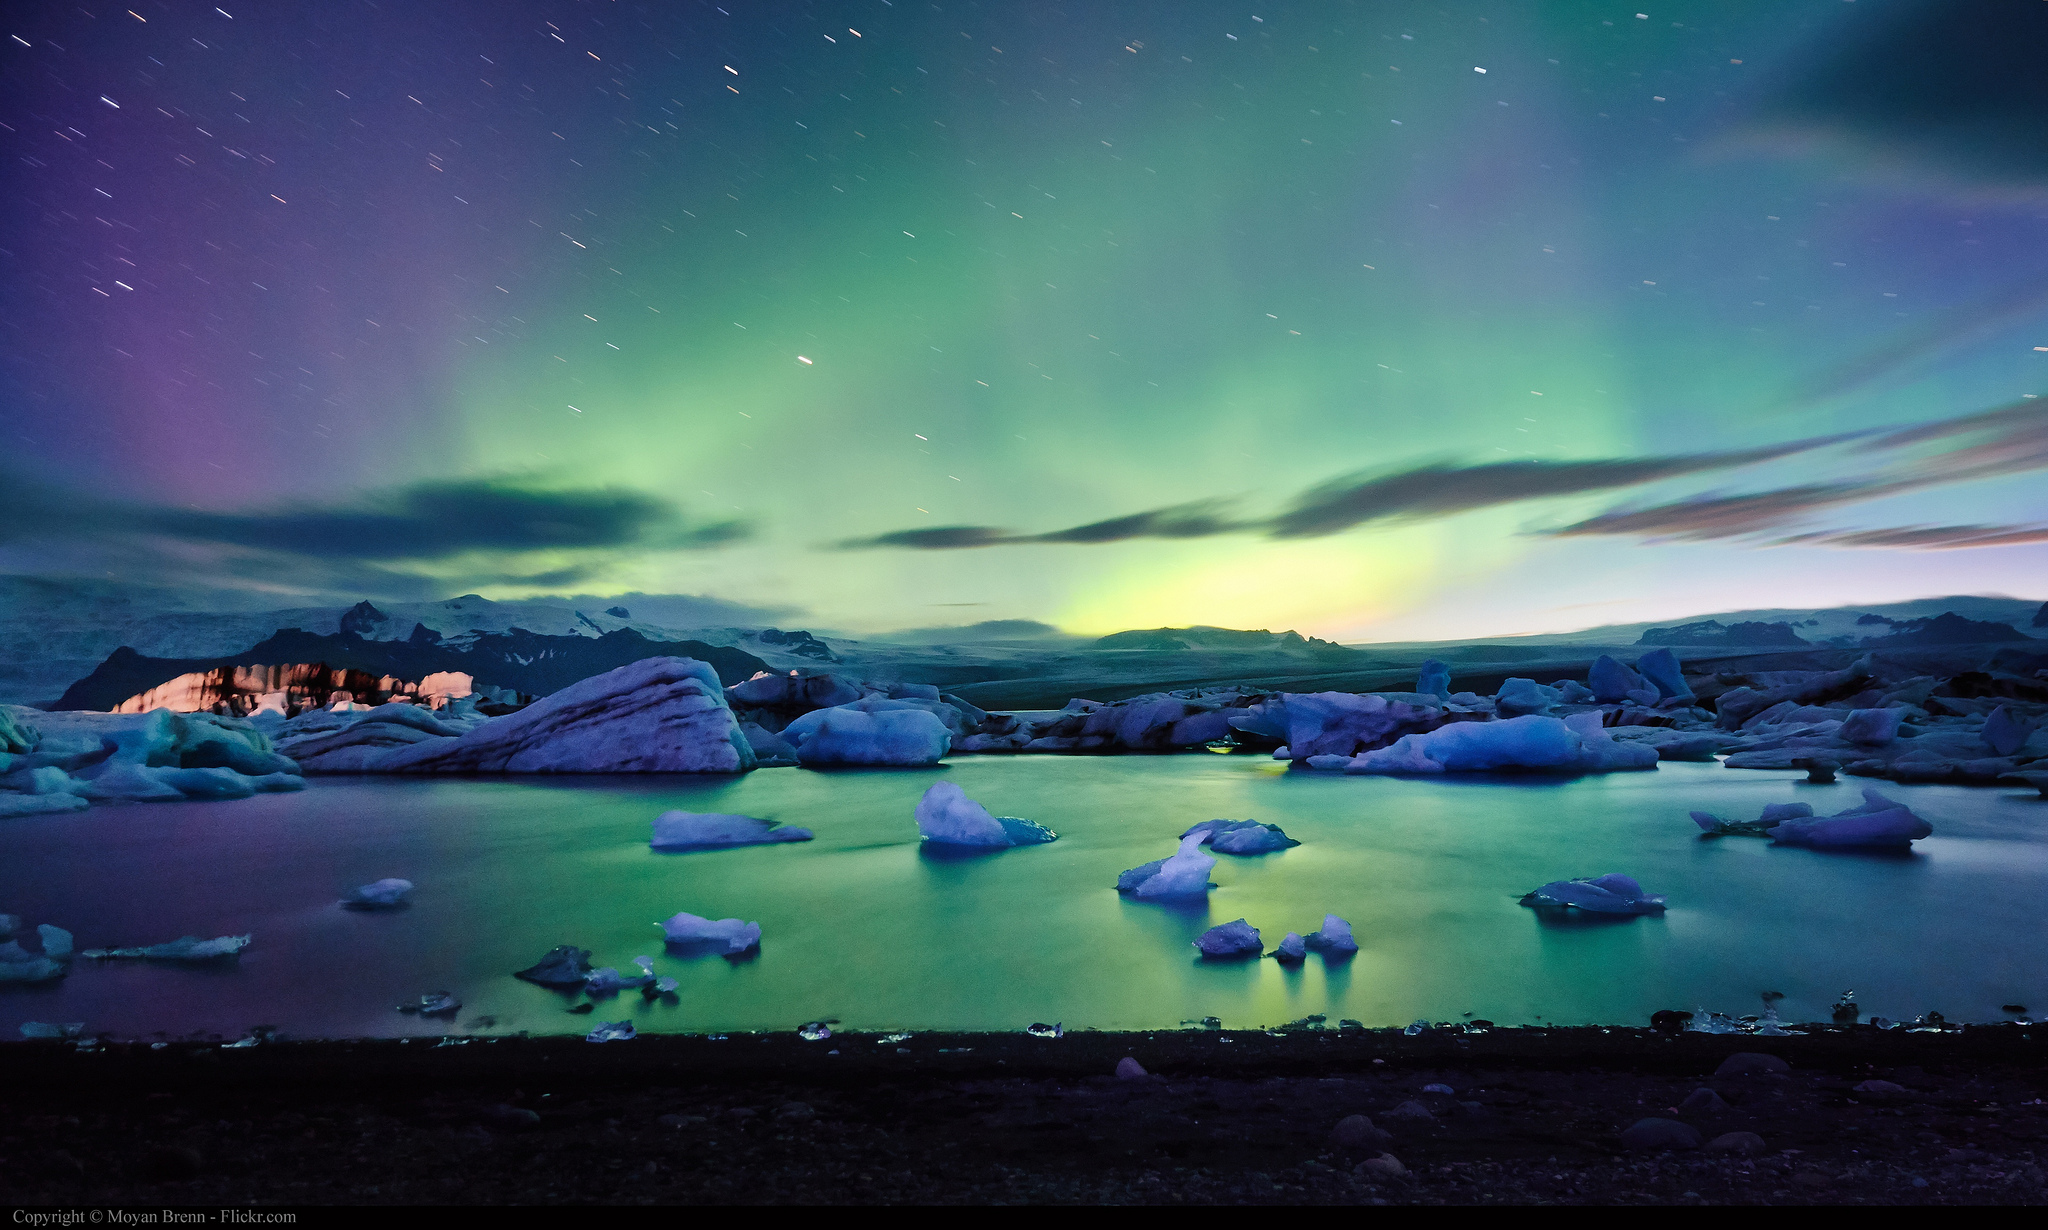 2. See the Northern Lights